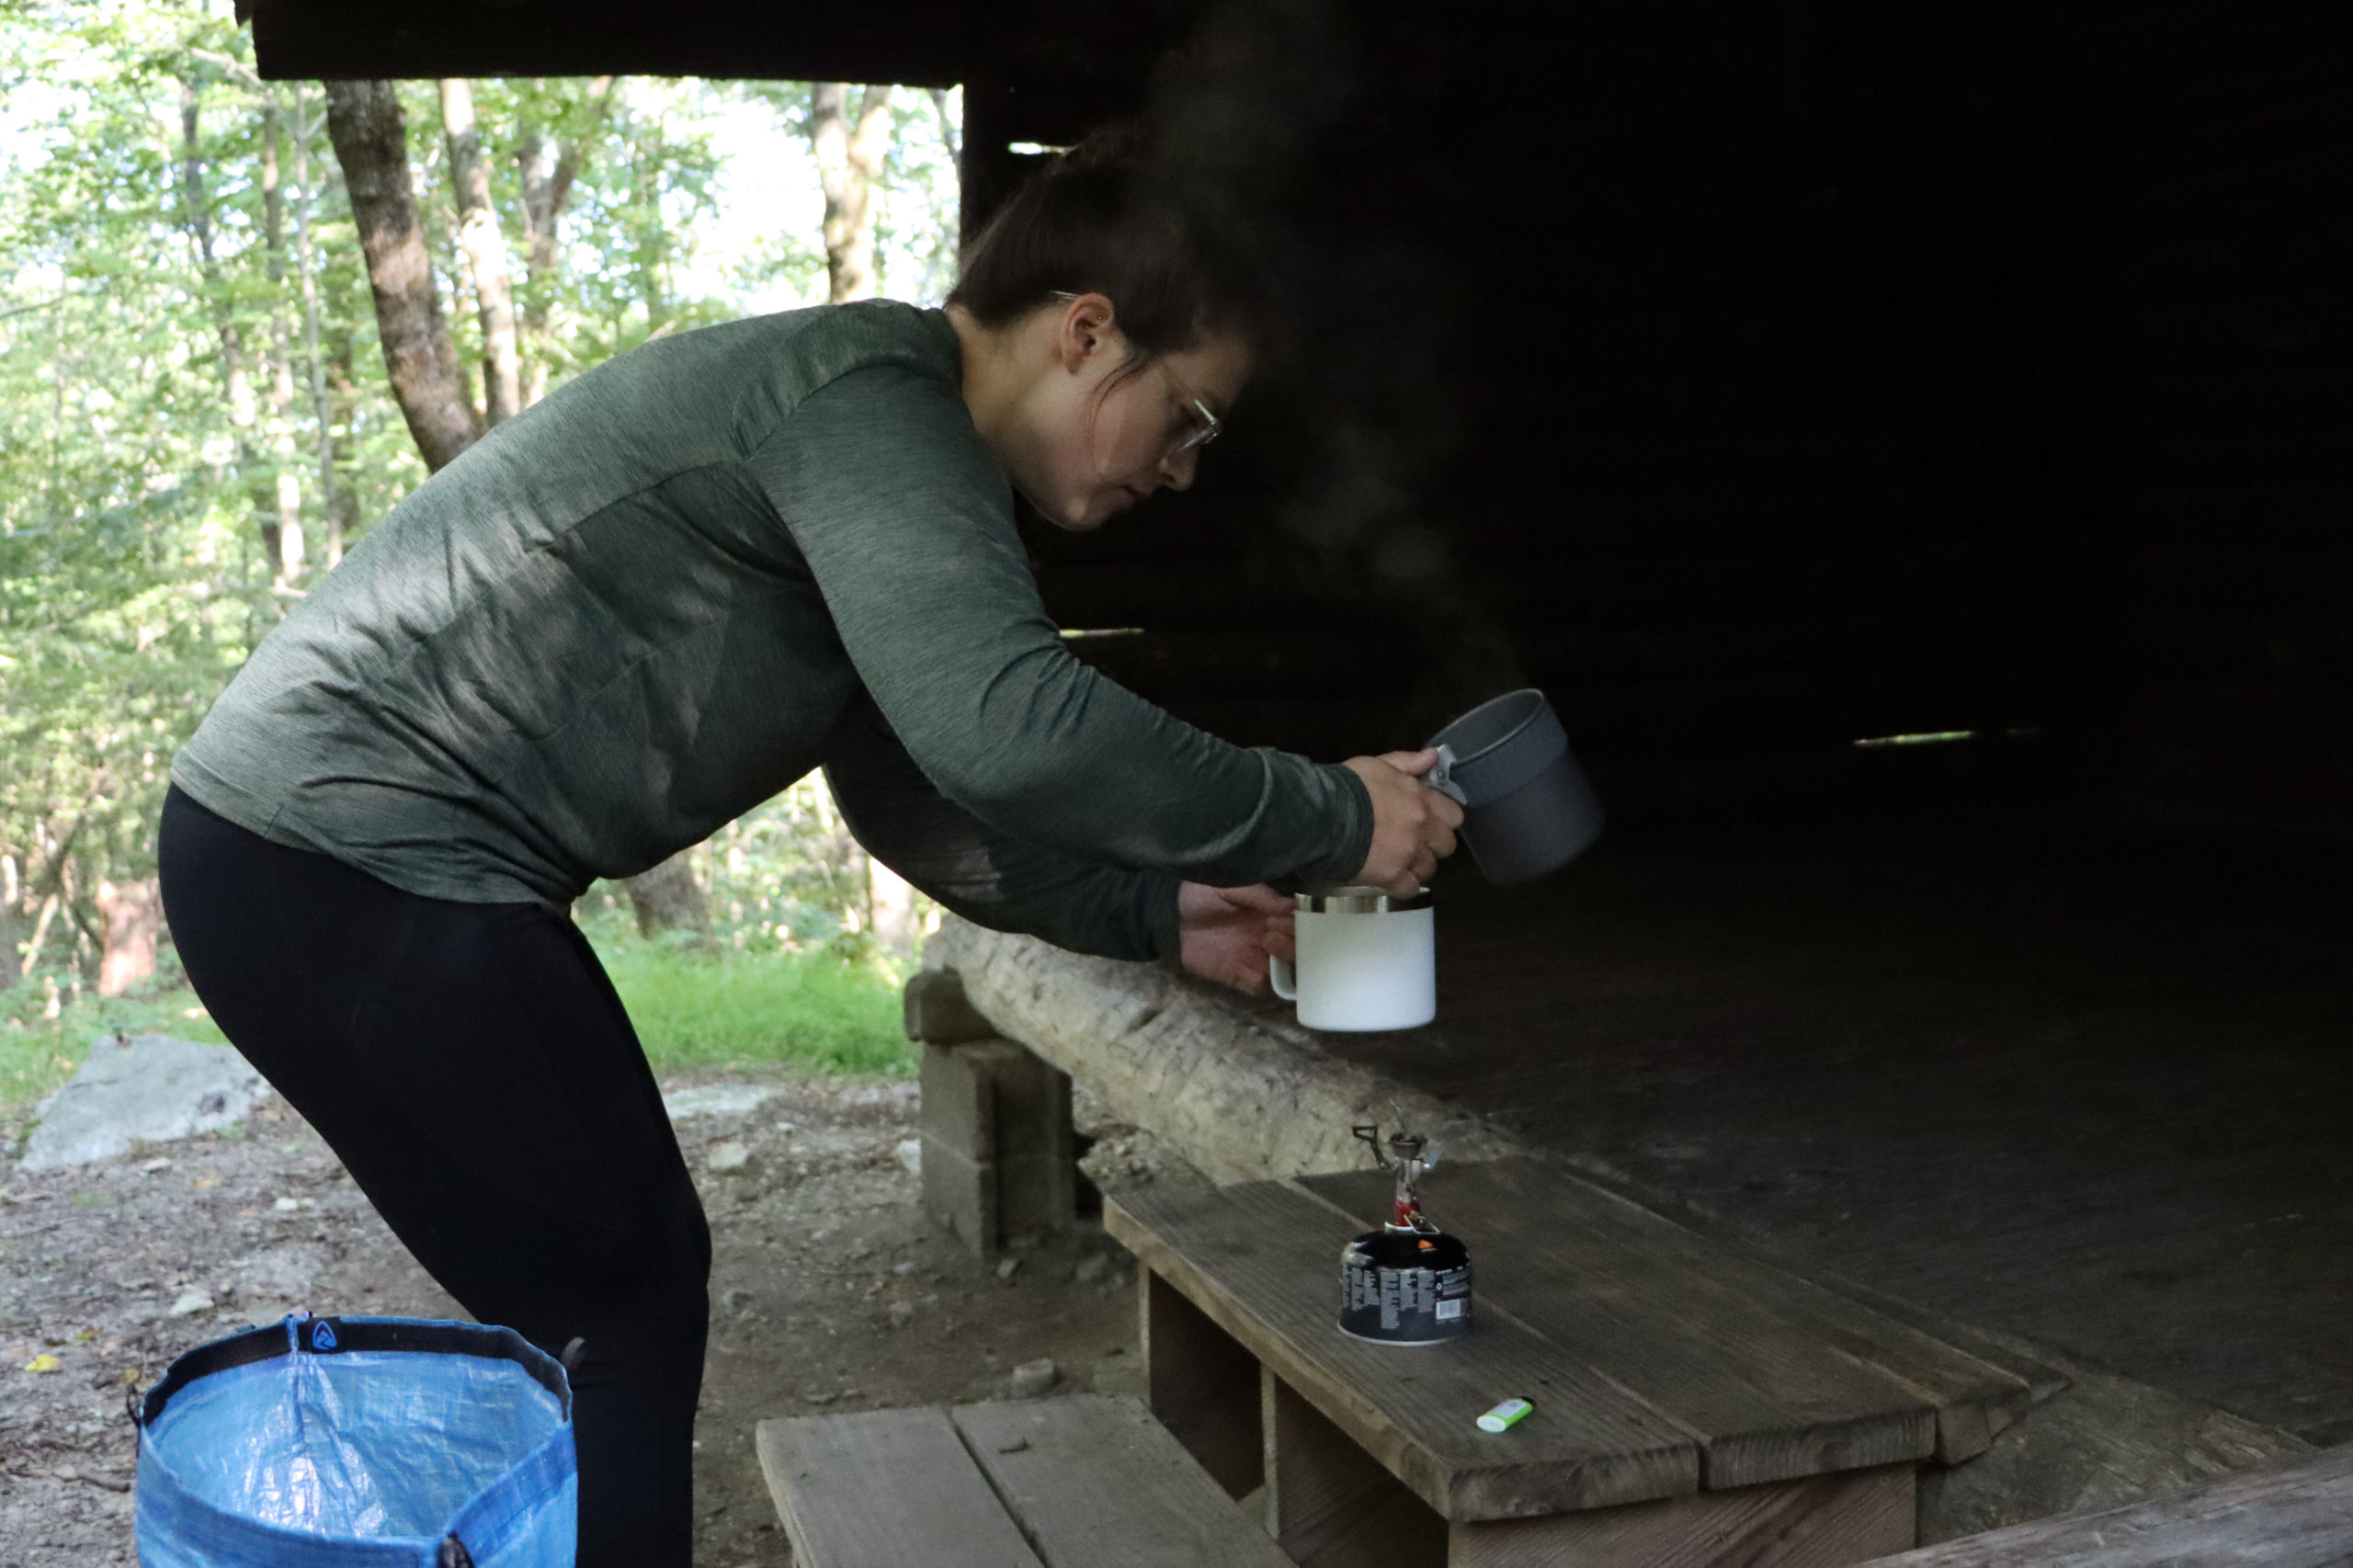 The blogger using an MSR Pocket Rocket stove to heat water in an MSR pot.